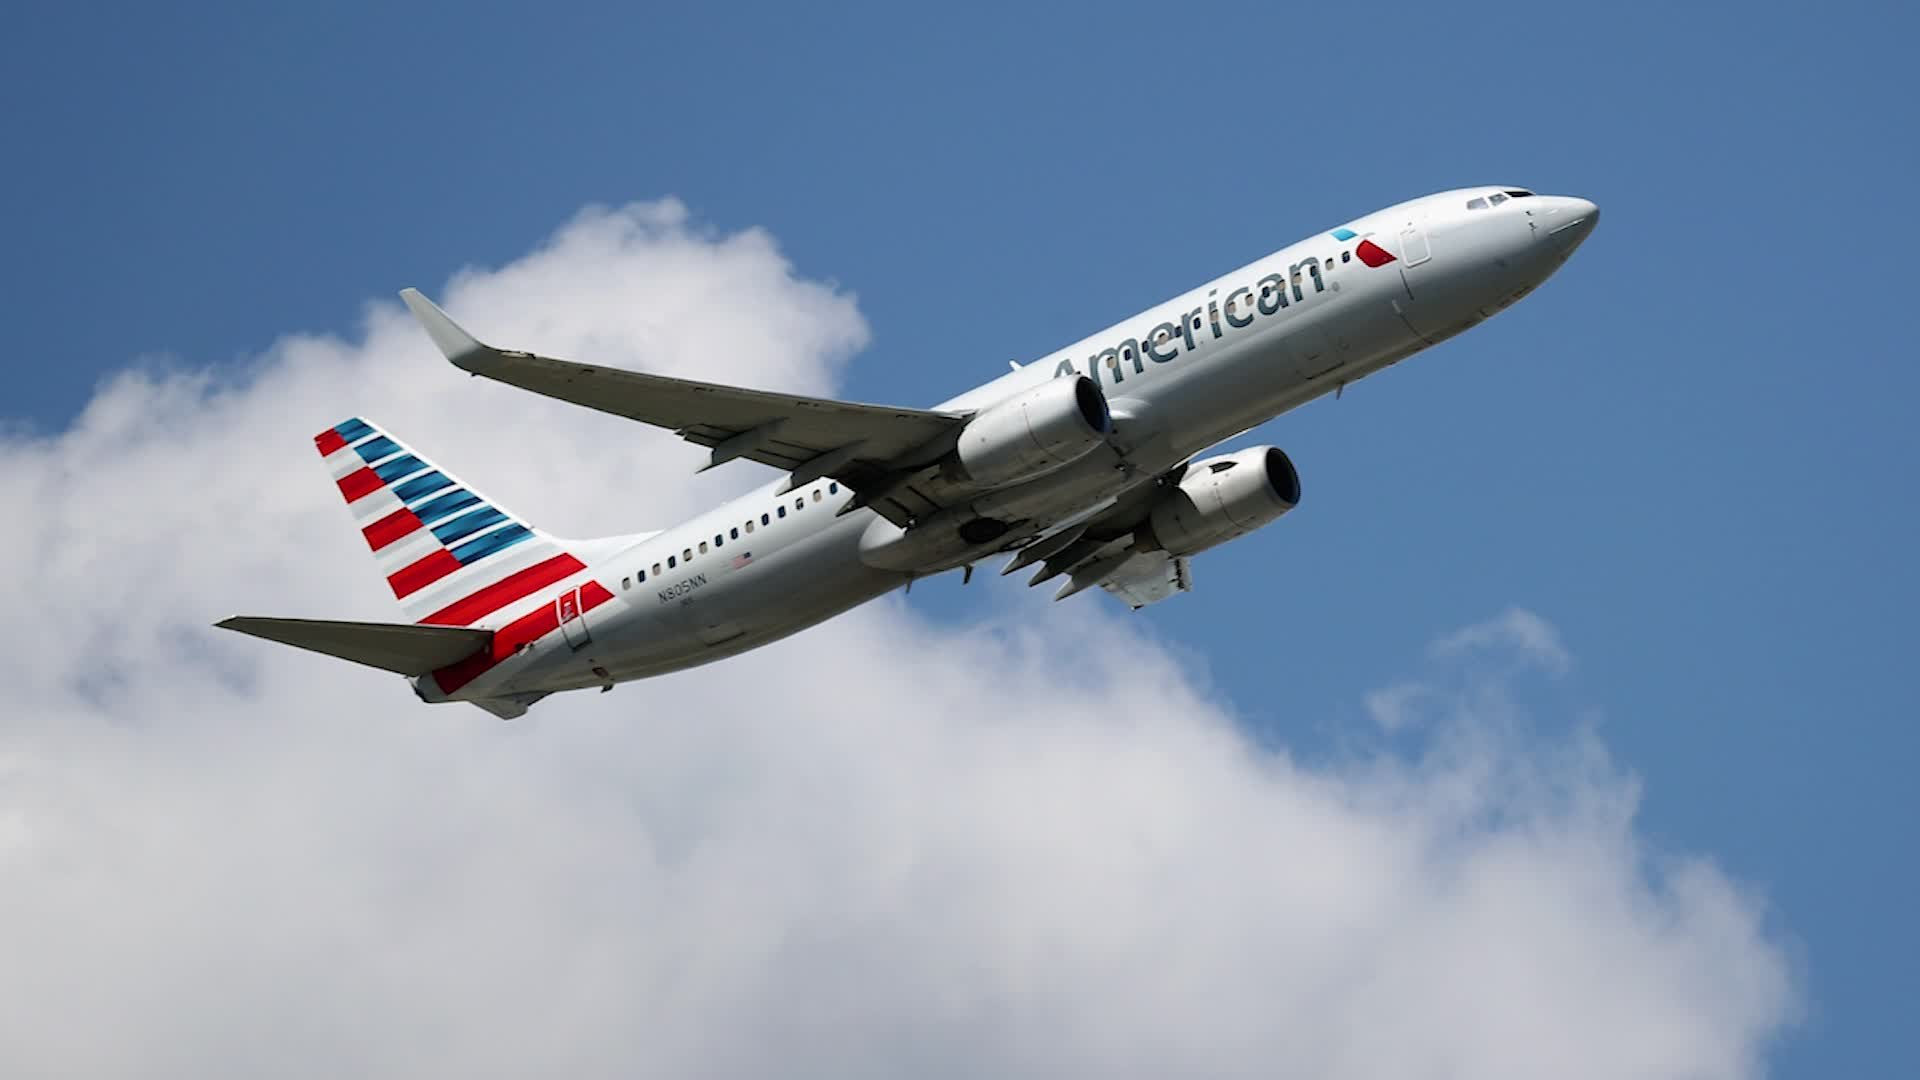 American Airlines mechanic accused of trying to sabotage plane denied bond